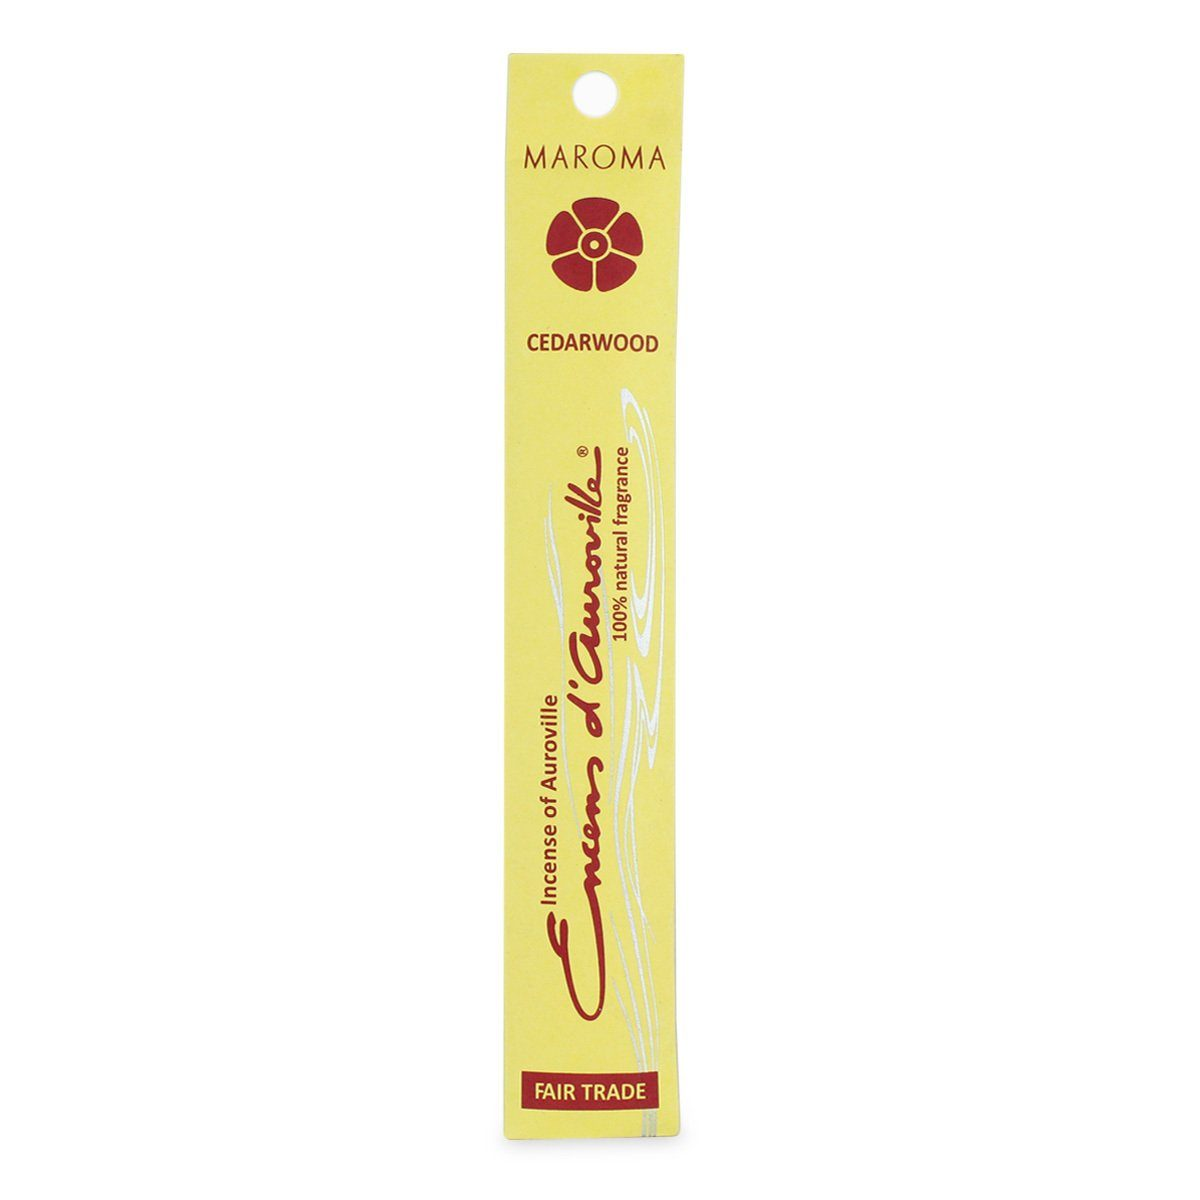 Healthy Lifestyles - Maroma - Cedarwood Incense Sticks, 10 Sticks